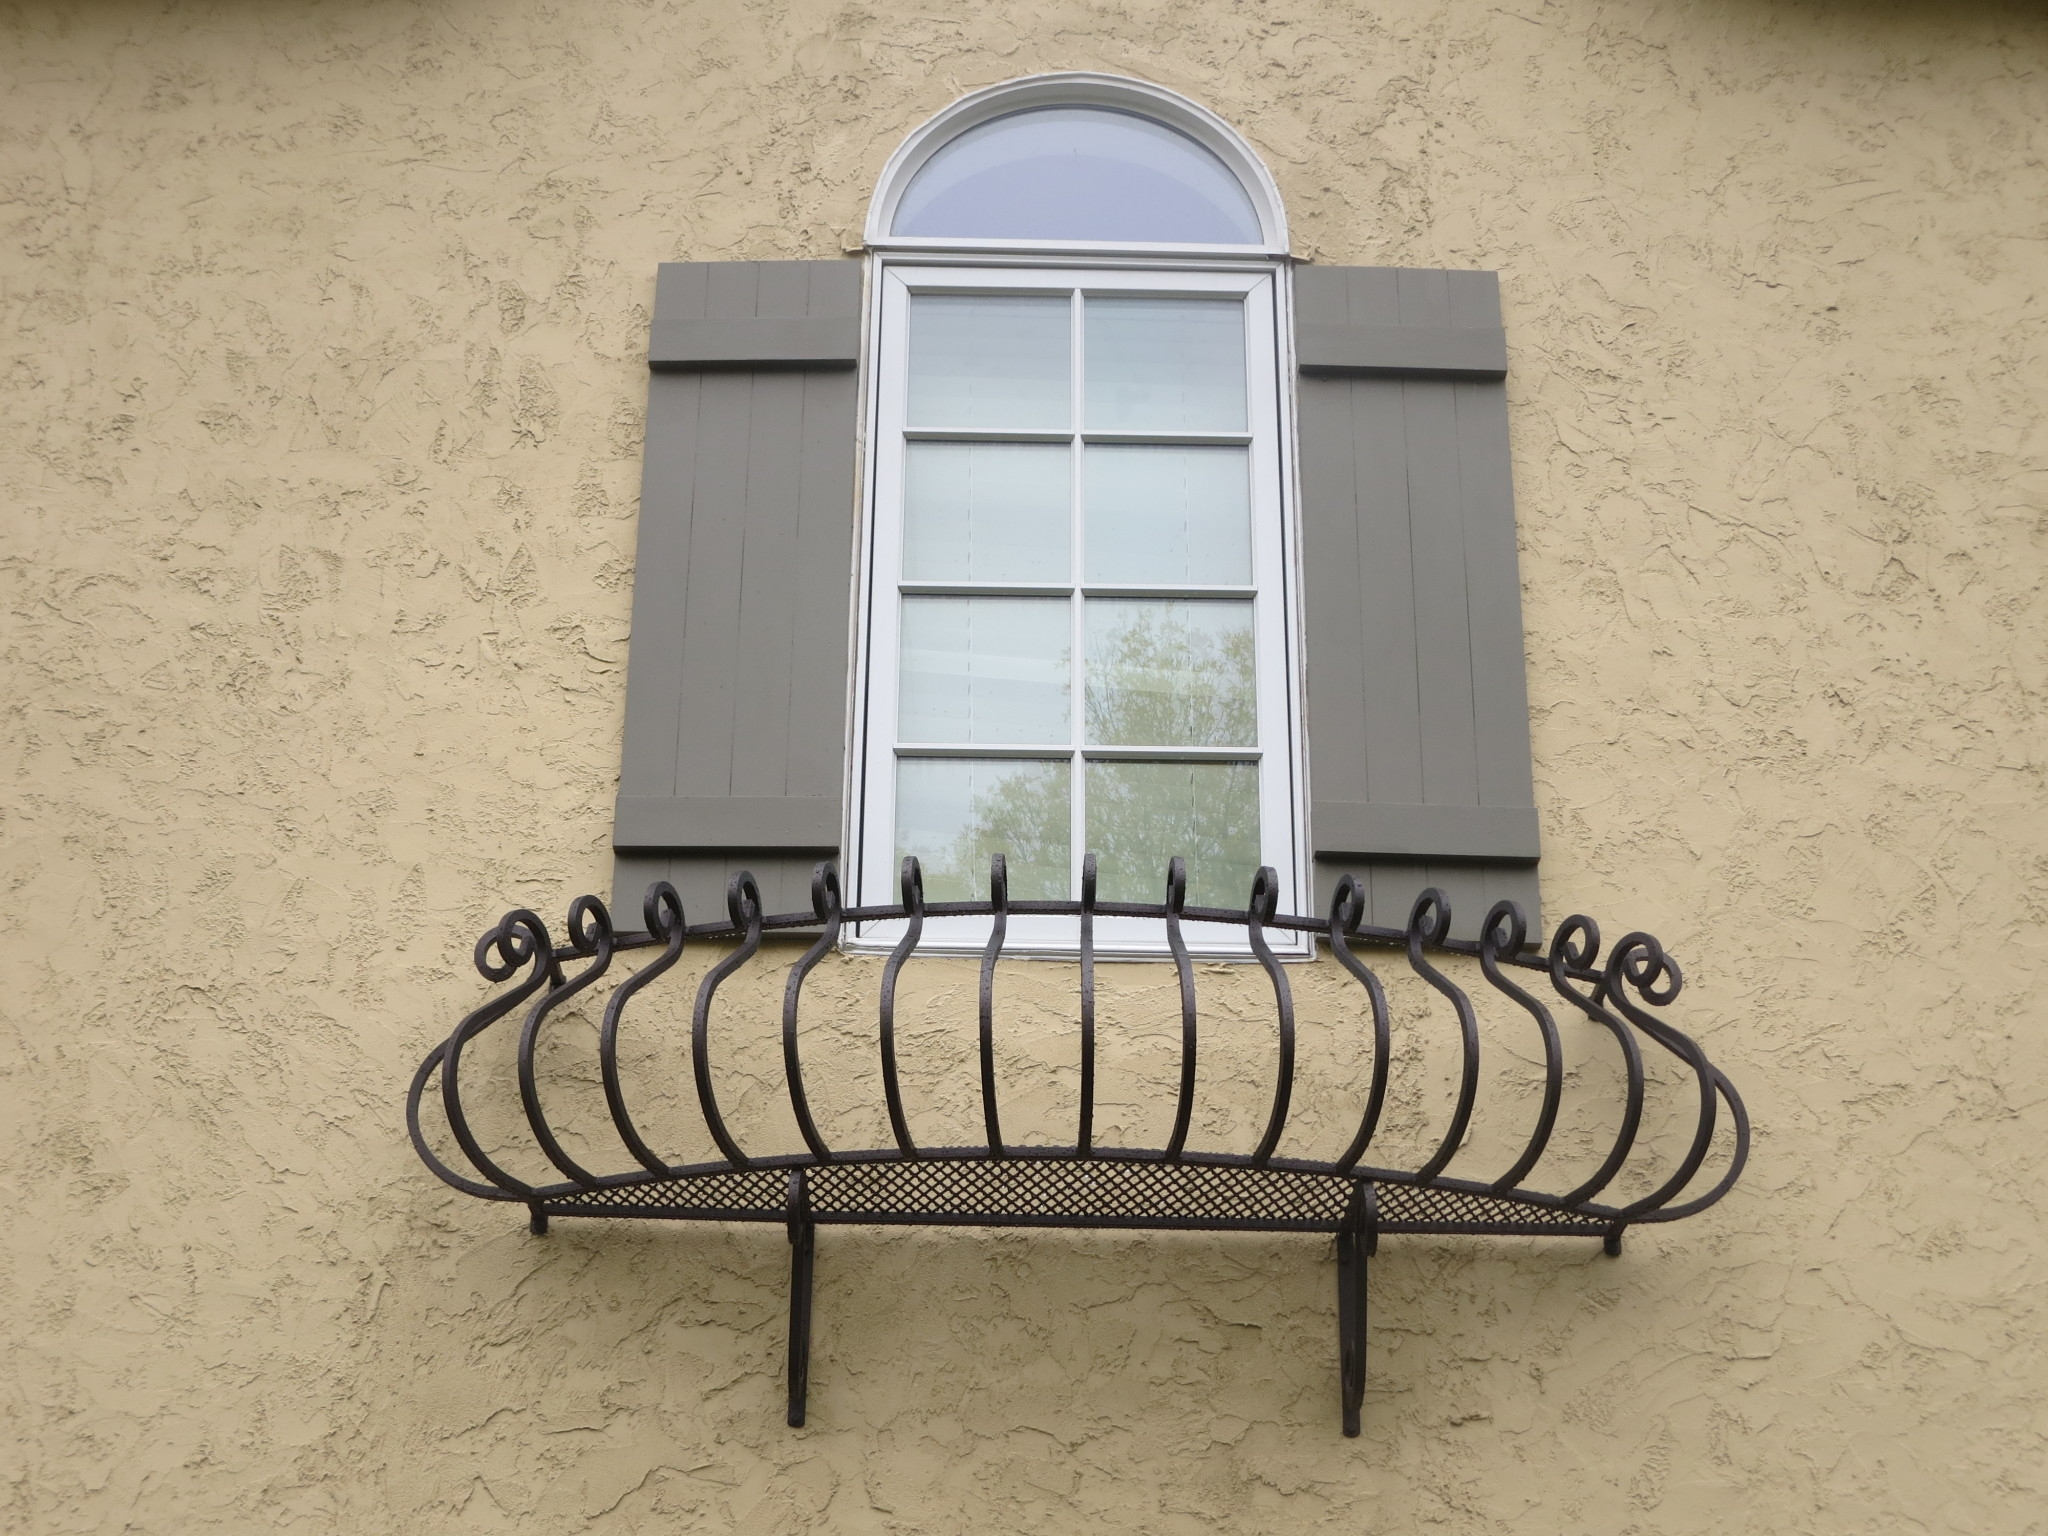 Ornamental Iron Wrought Iron Products O Brien Iron | Curved Wrought Iron Railings | Colonial | Wood | Wall Mounted | Outdoor | Veranda